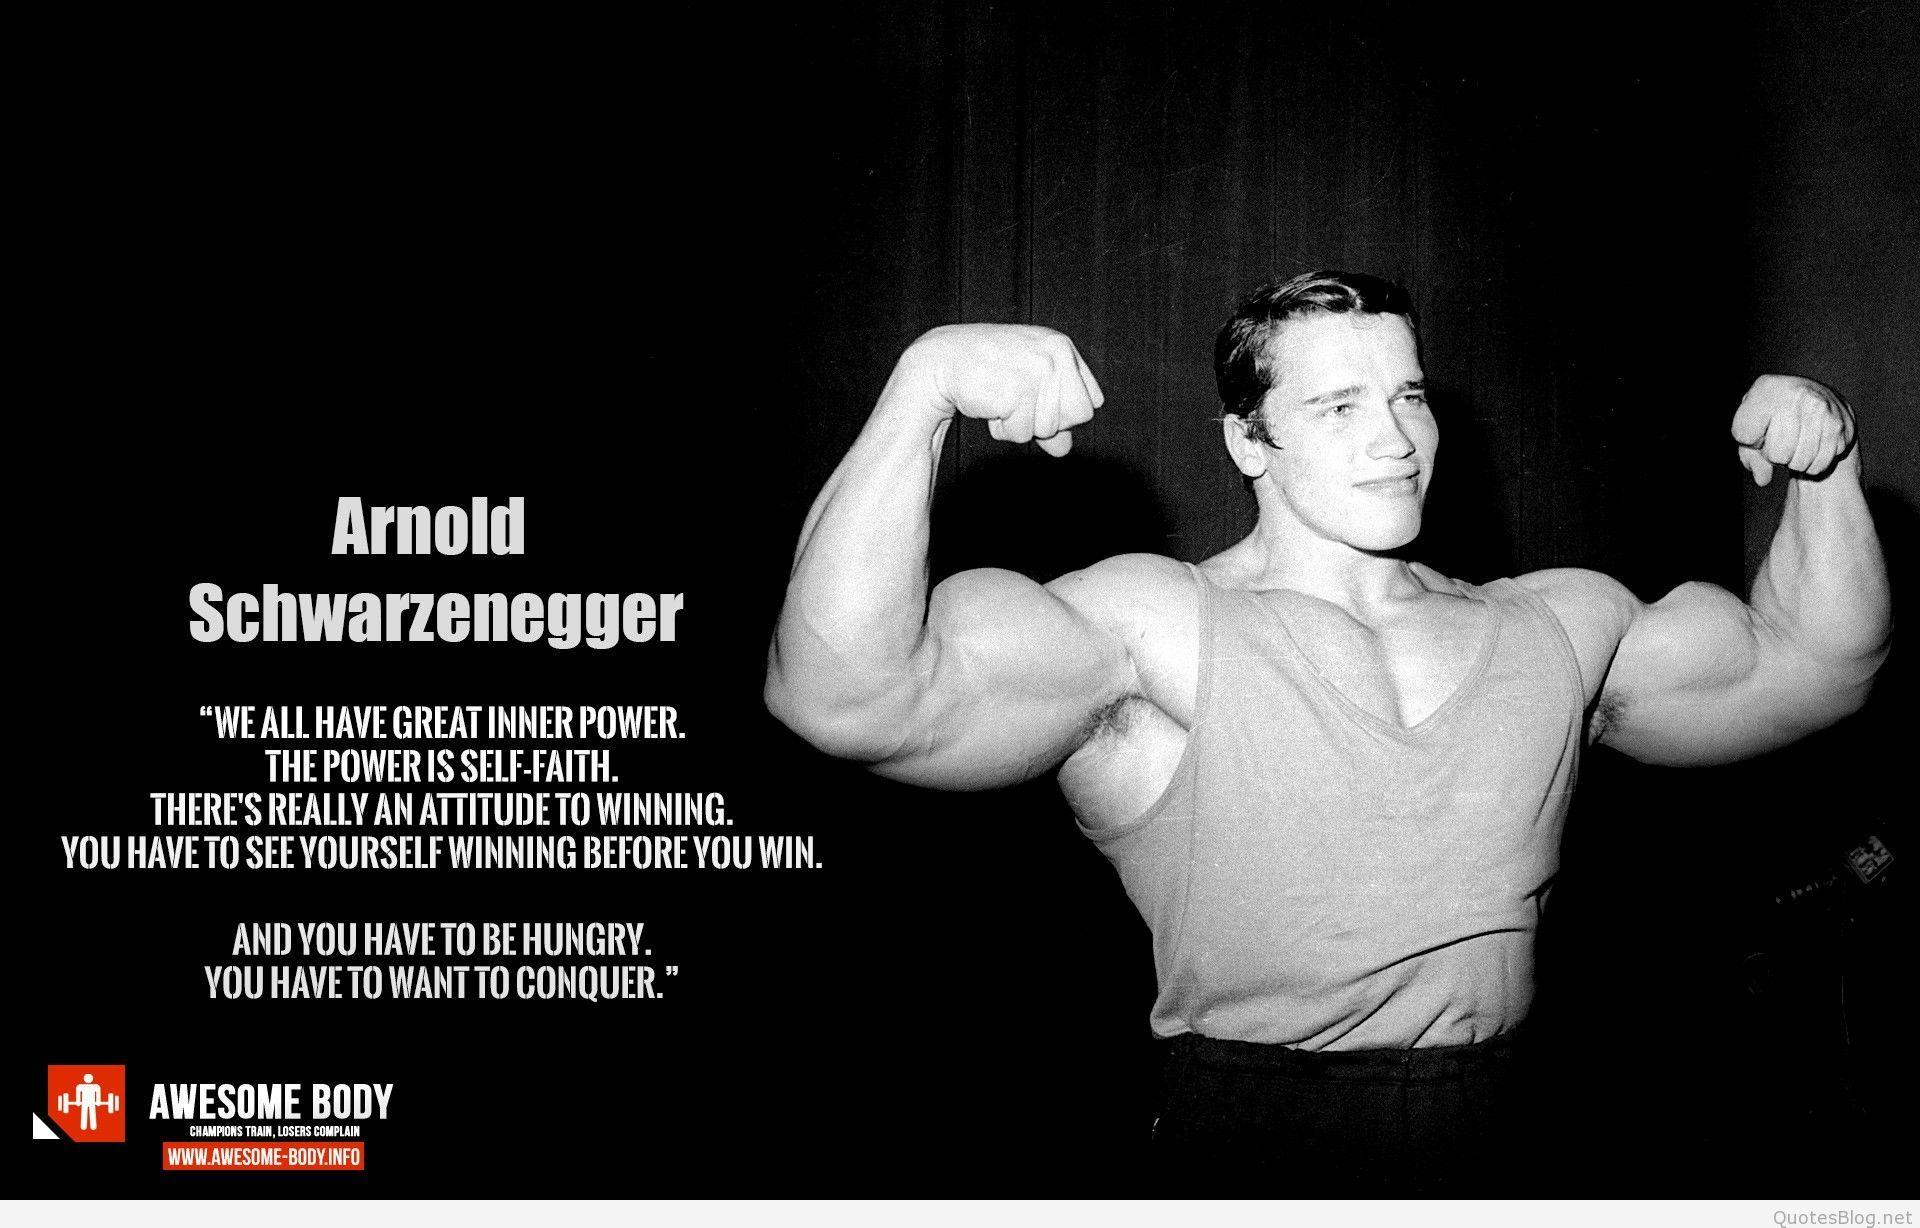 Arnold bodybuilding wallpapers wallpaper cave best arnold schwarzenegger quotes wallpapers images malvernweather Image collections